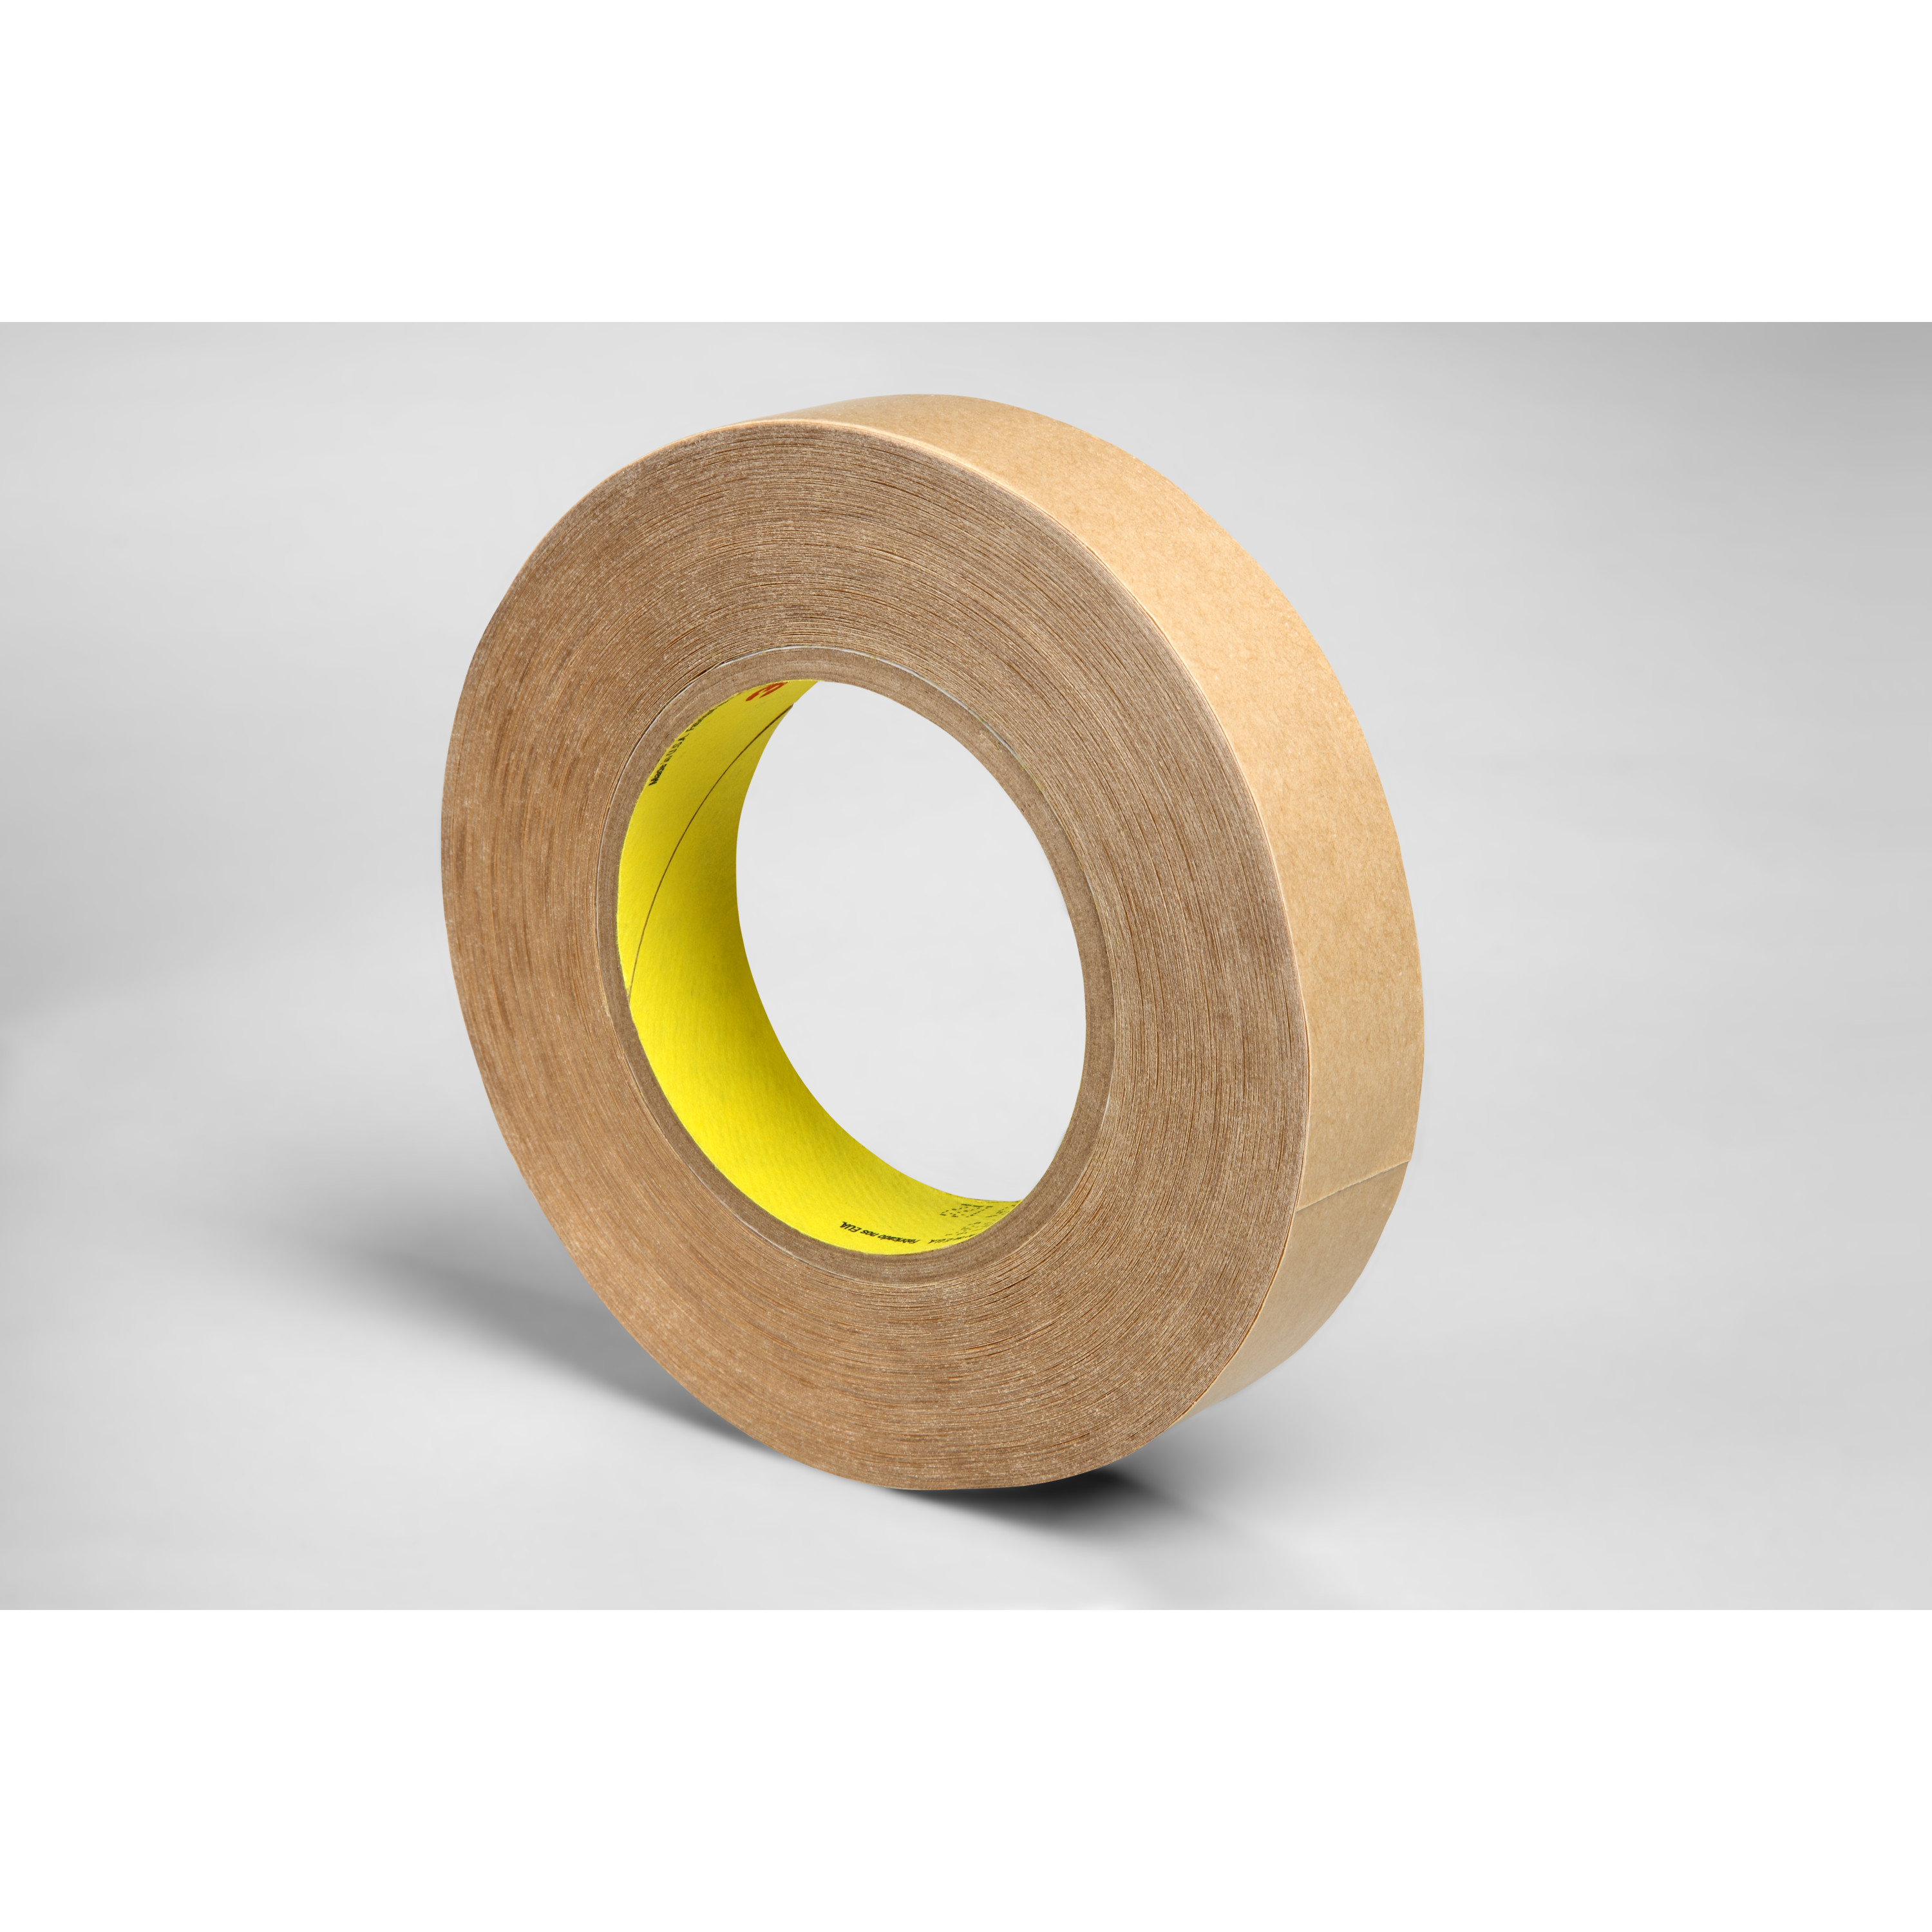 3M™ Double Coated Tape 9576, Clear, 3/4 in x 60 yd, 4 mil, 48 rolls per case